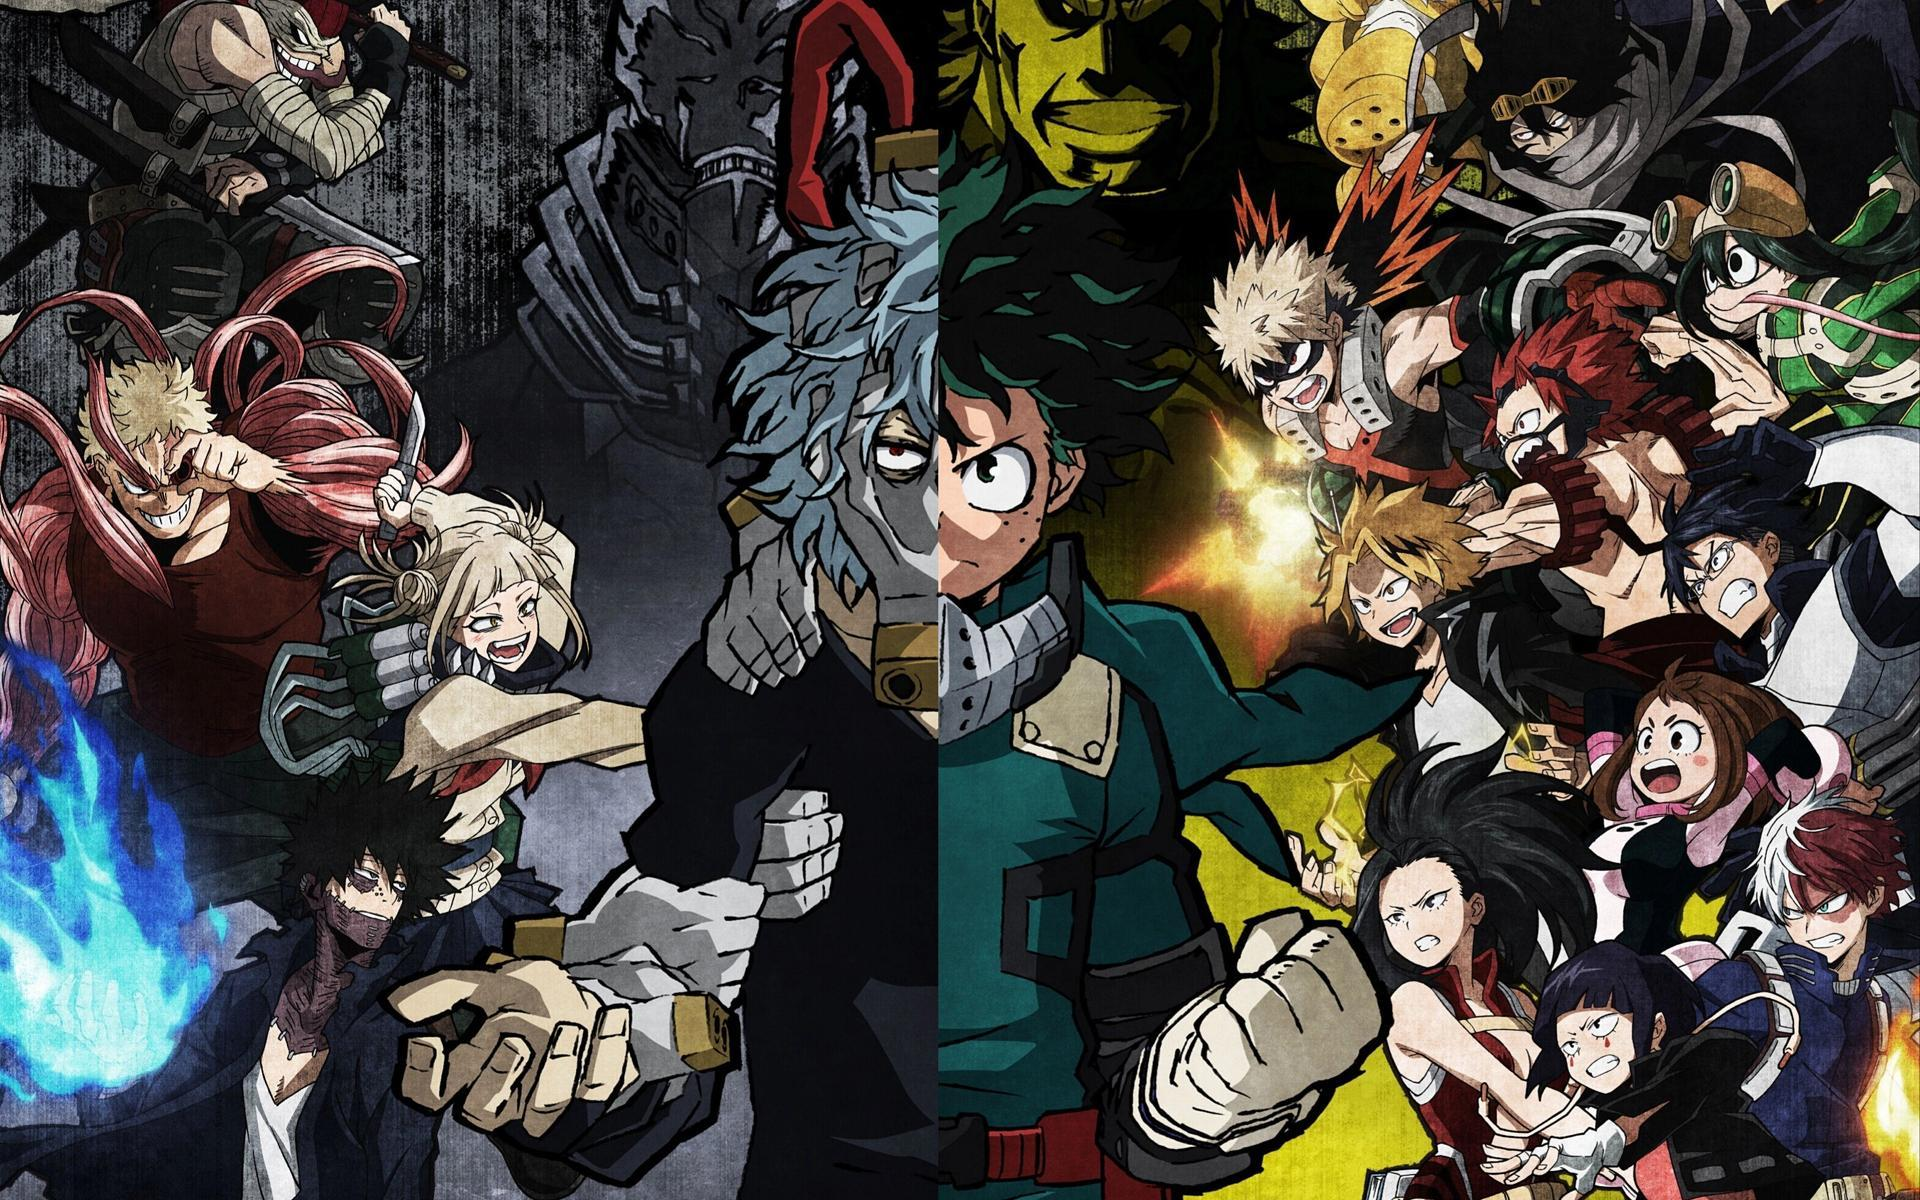 """New 05 images (scroll down to end in """"options"""" box). My Hero Academia Vs Naruto Wallpapers - Wallpaper Cave"""